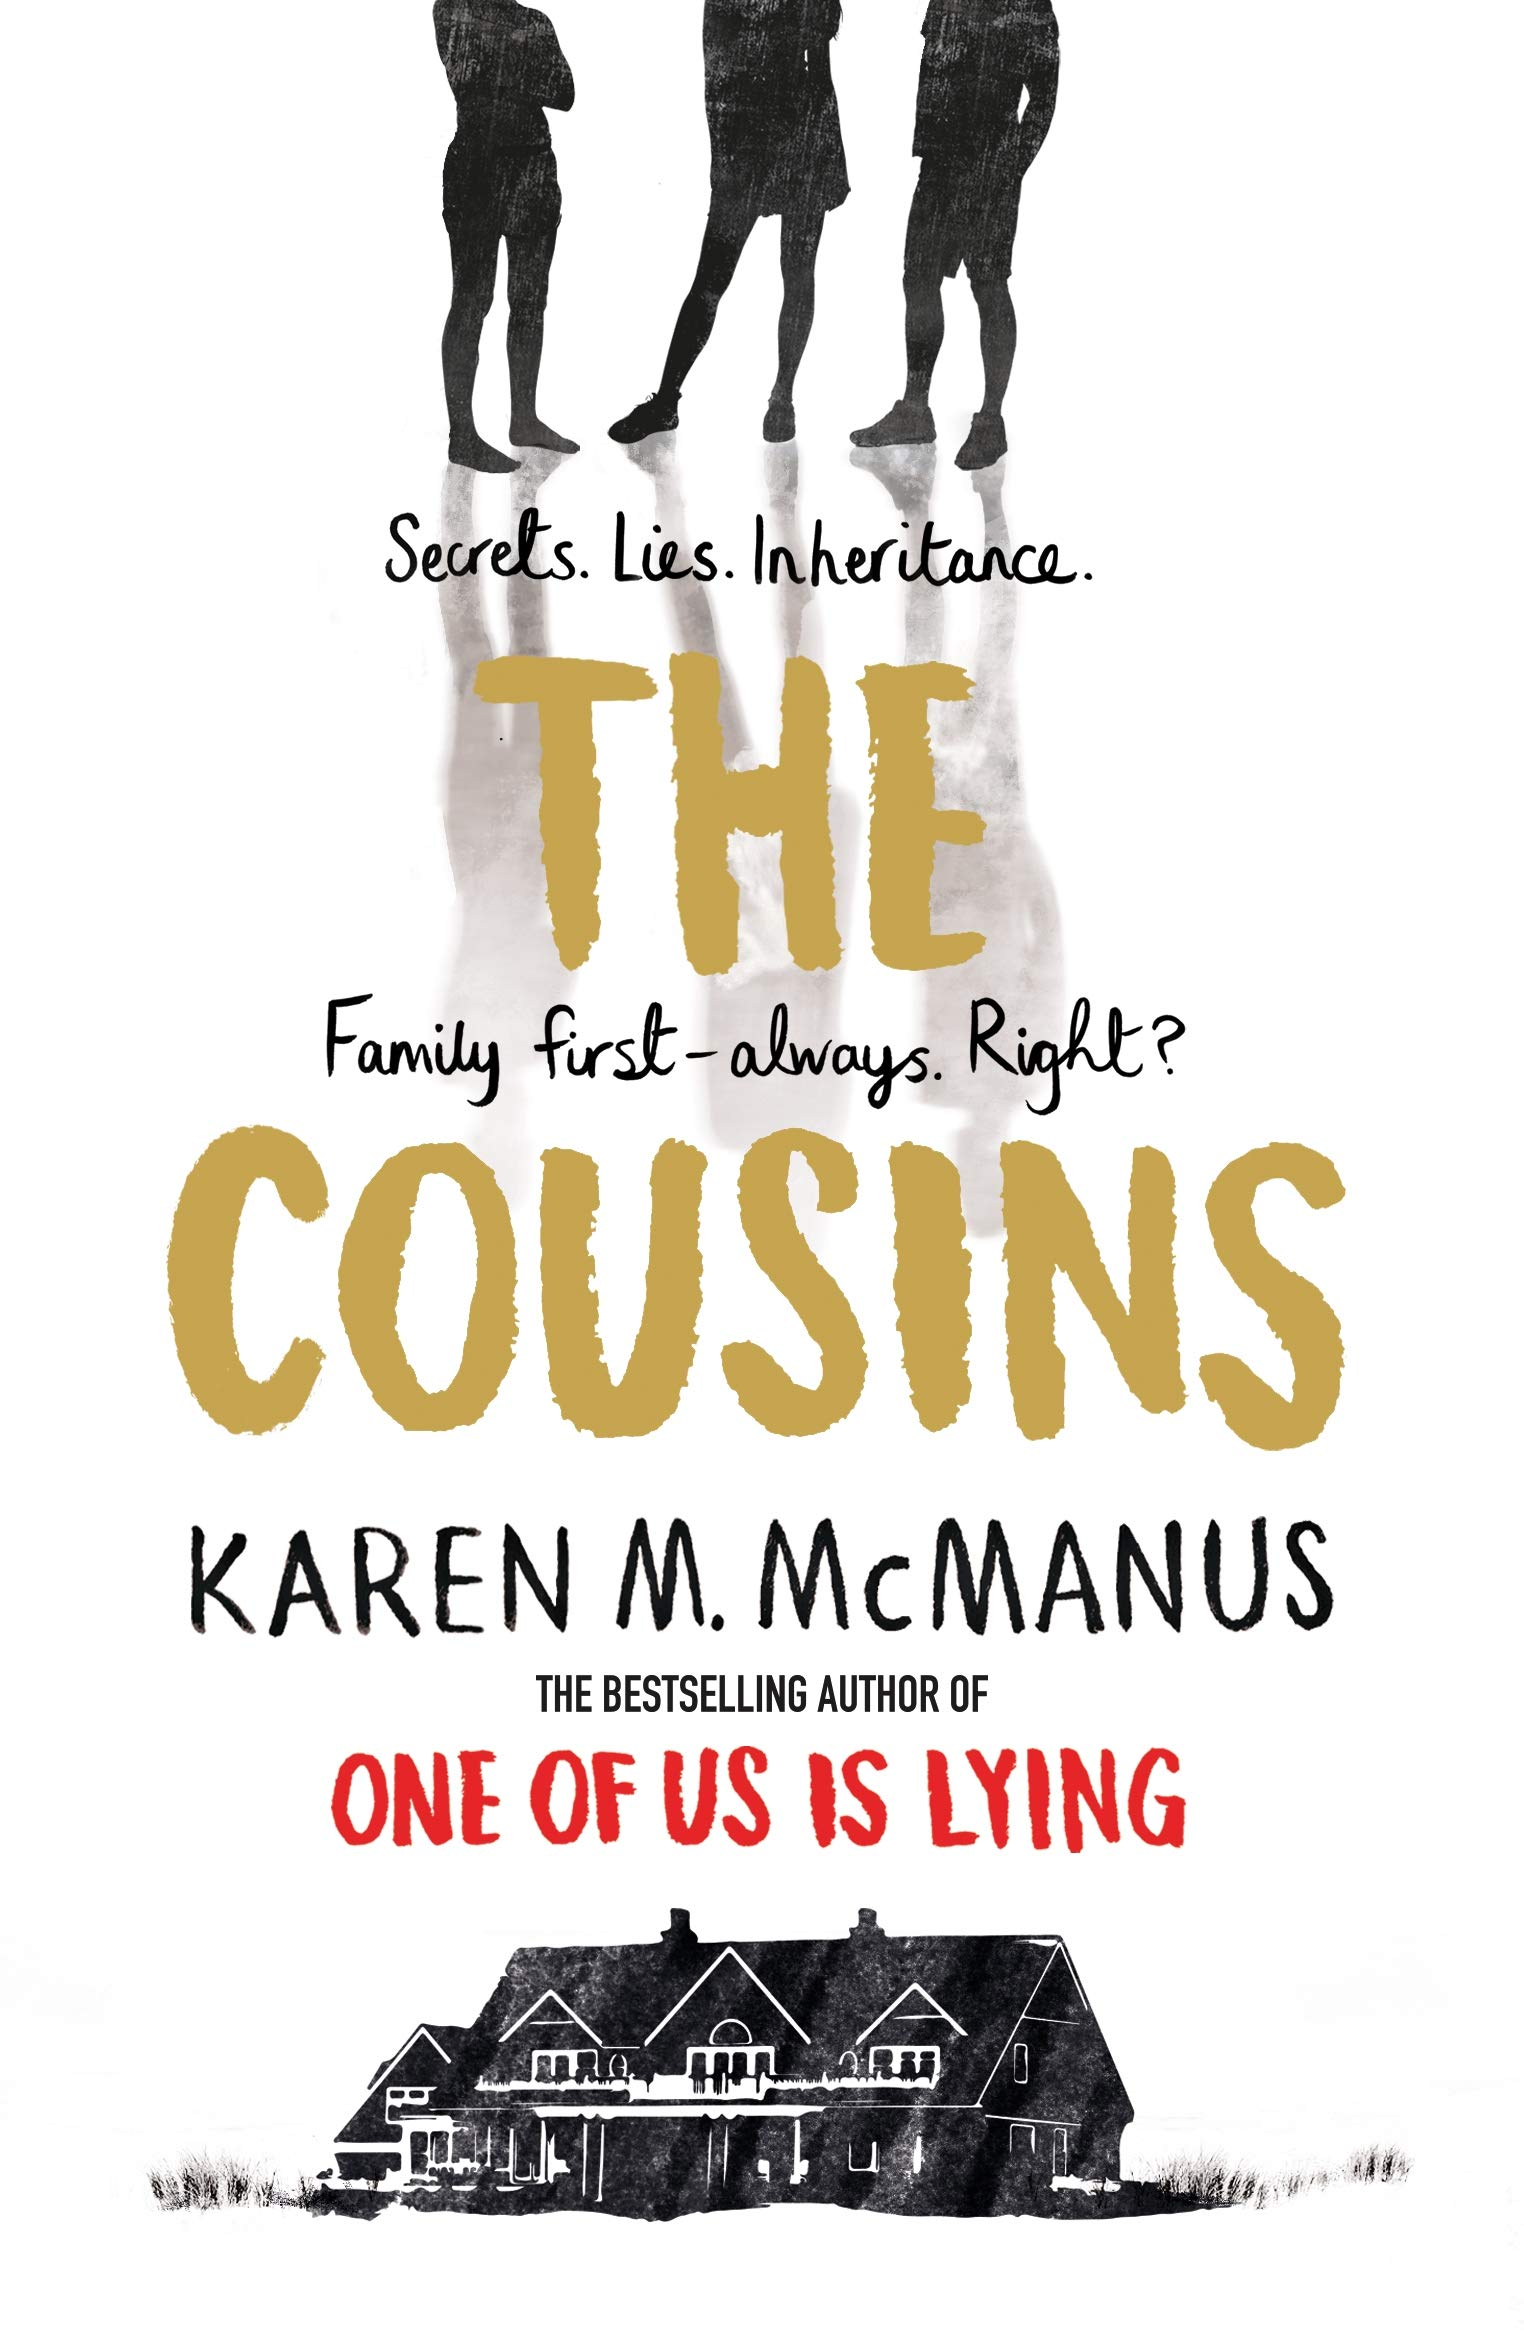 Buy The Cousins Book Online at Low Prices in India | The Cousins Reviews &  Ratings - Amazon.in